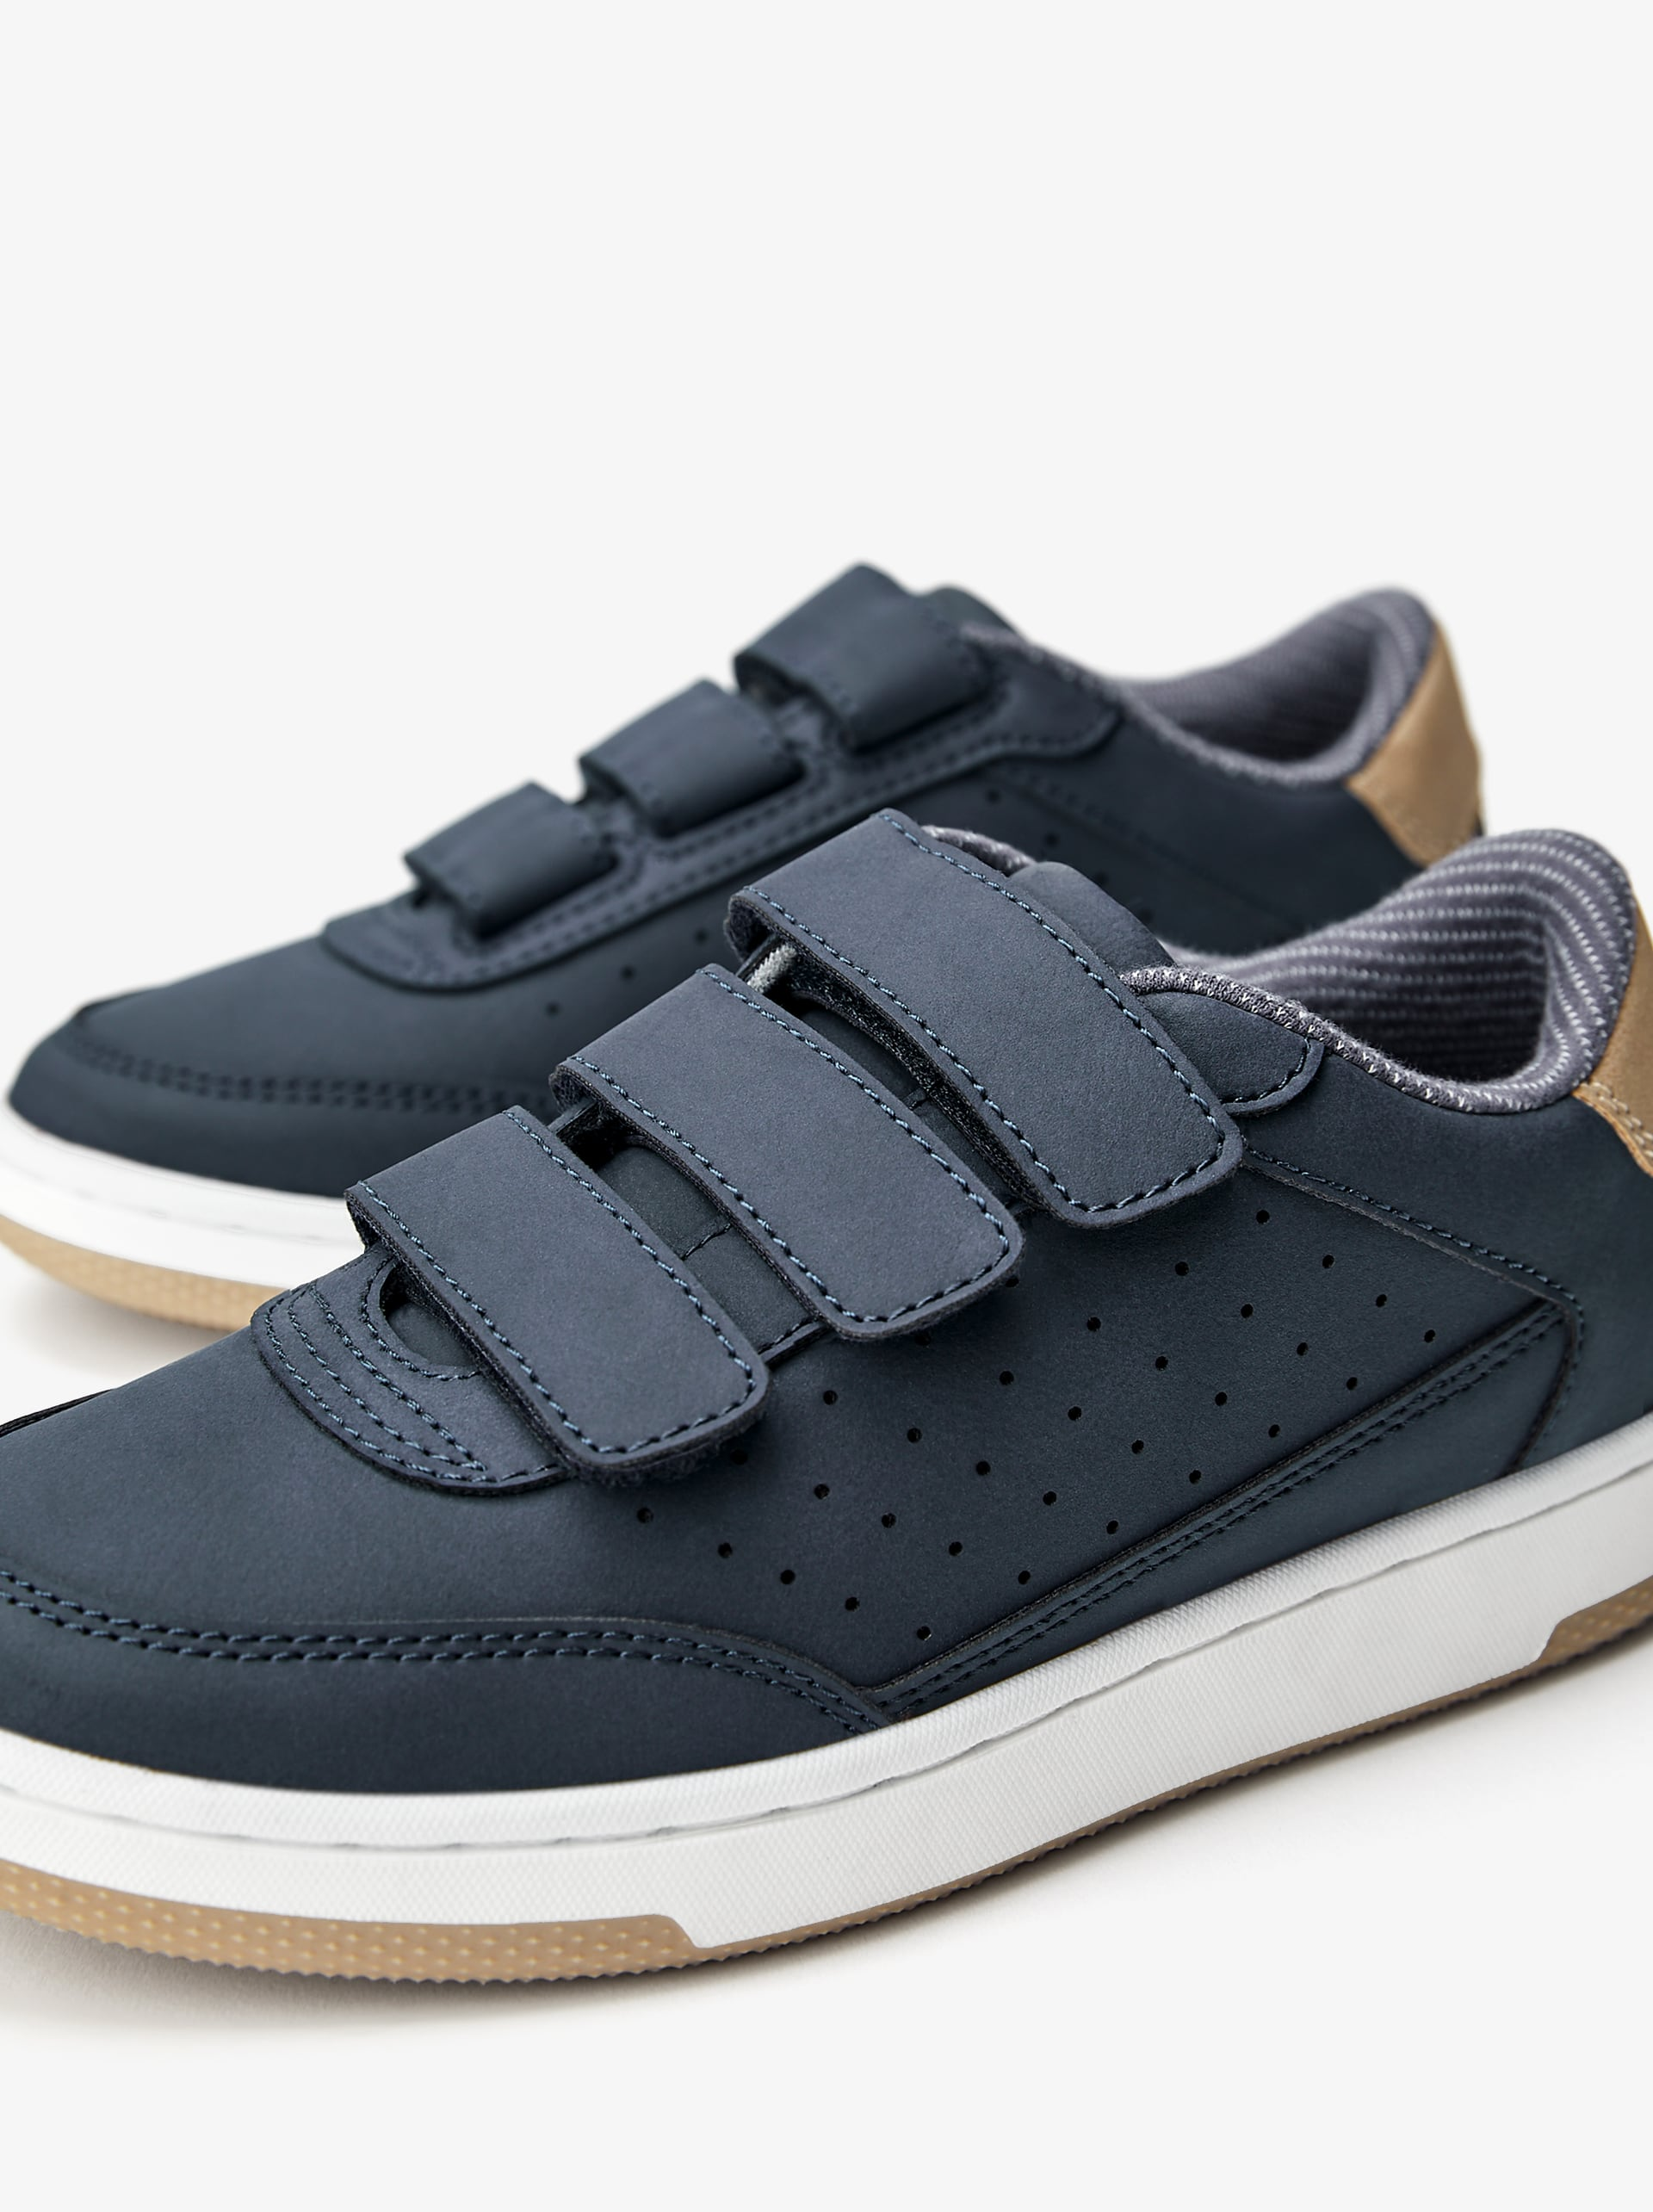 PLIMSOLLS WITH HOOK-AND-LOOP STRAPS